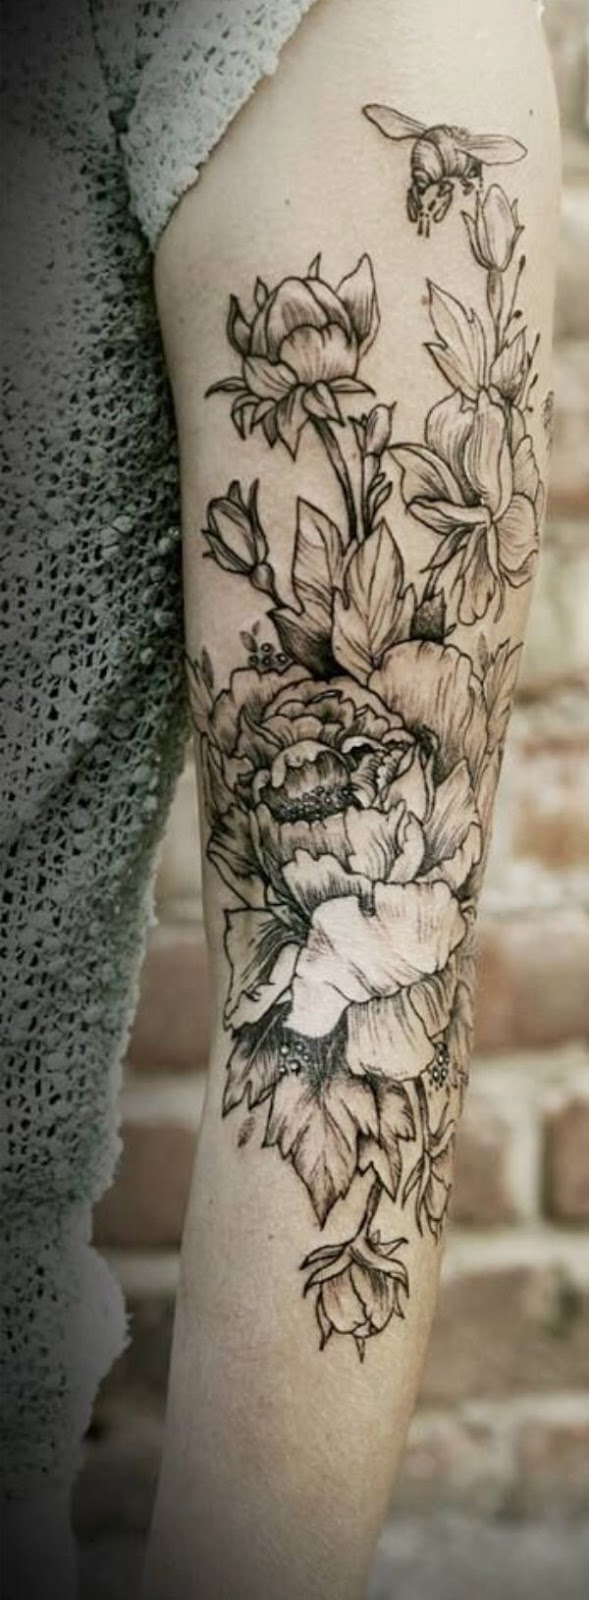 Black and white floral arm tattoo: Tattoo Trends - Flowers